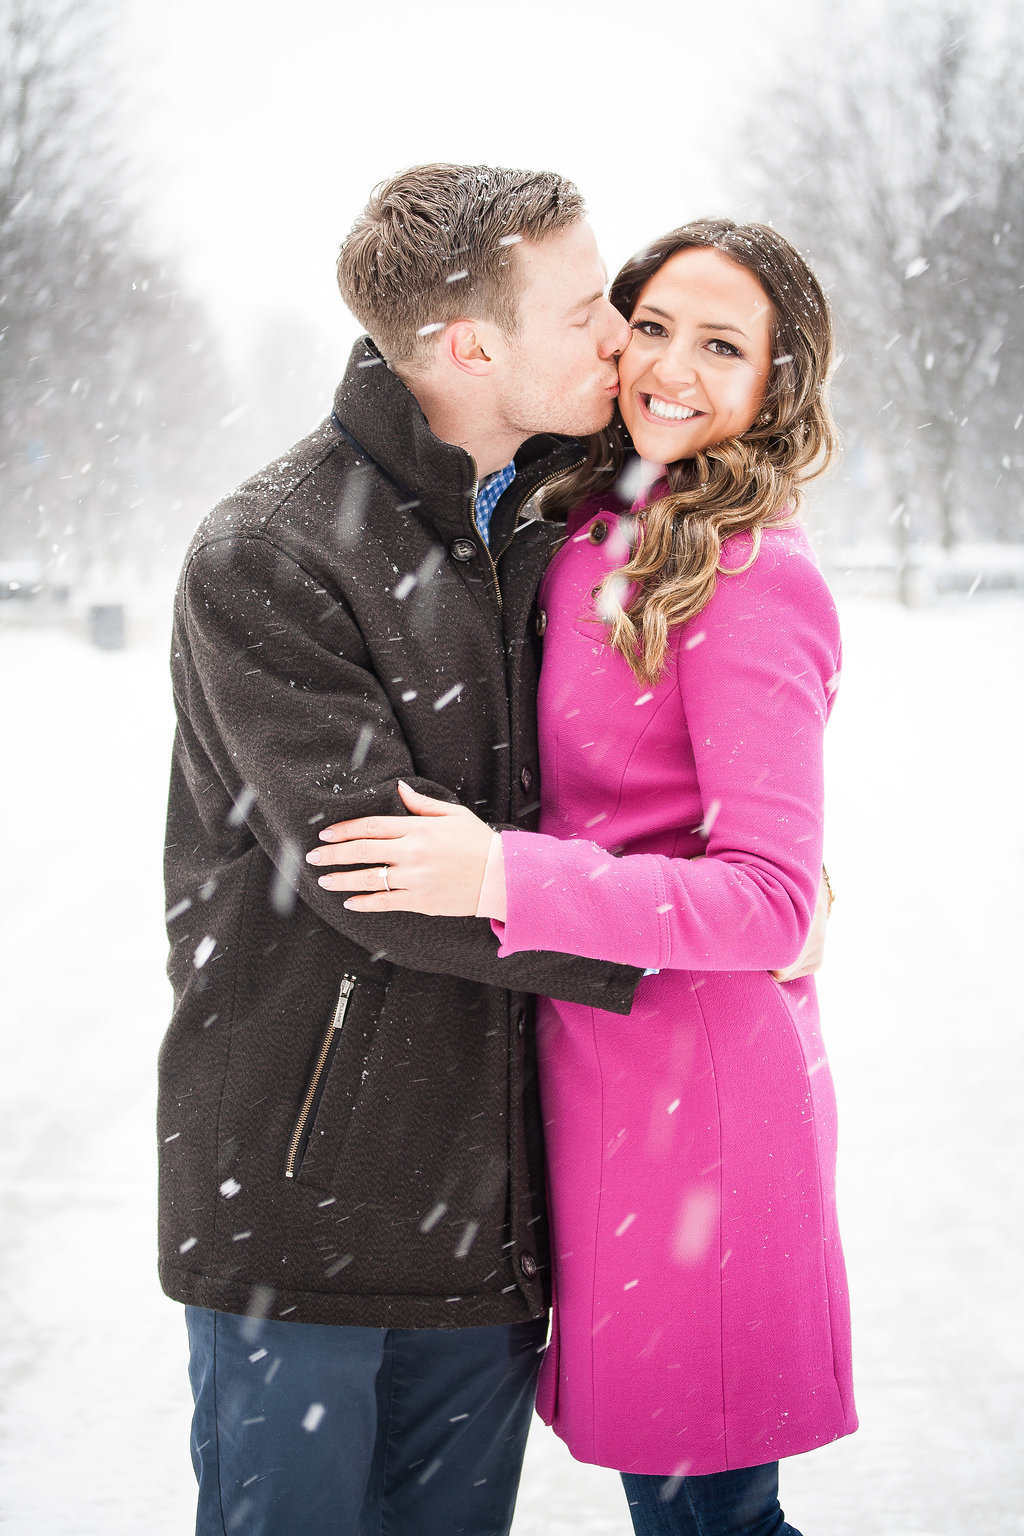 Millennium Park Chicago Illinois Winter Engagement Photographer Taylor Ingles 9